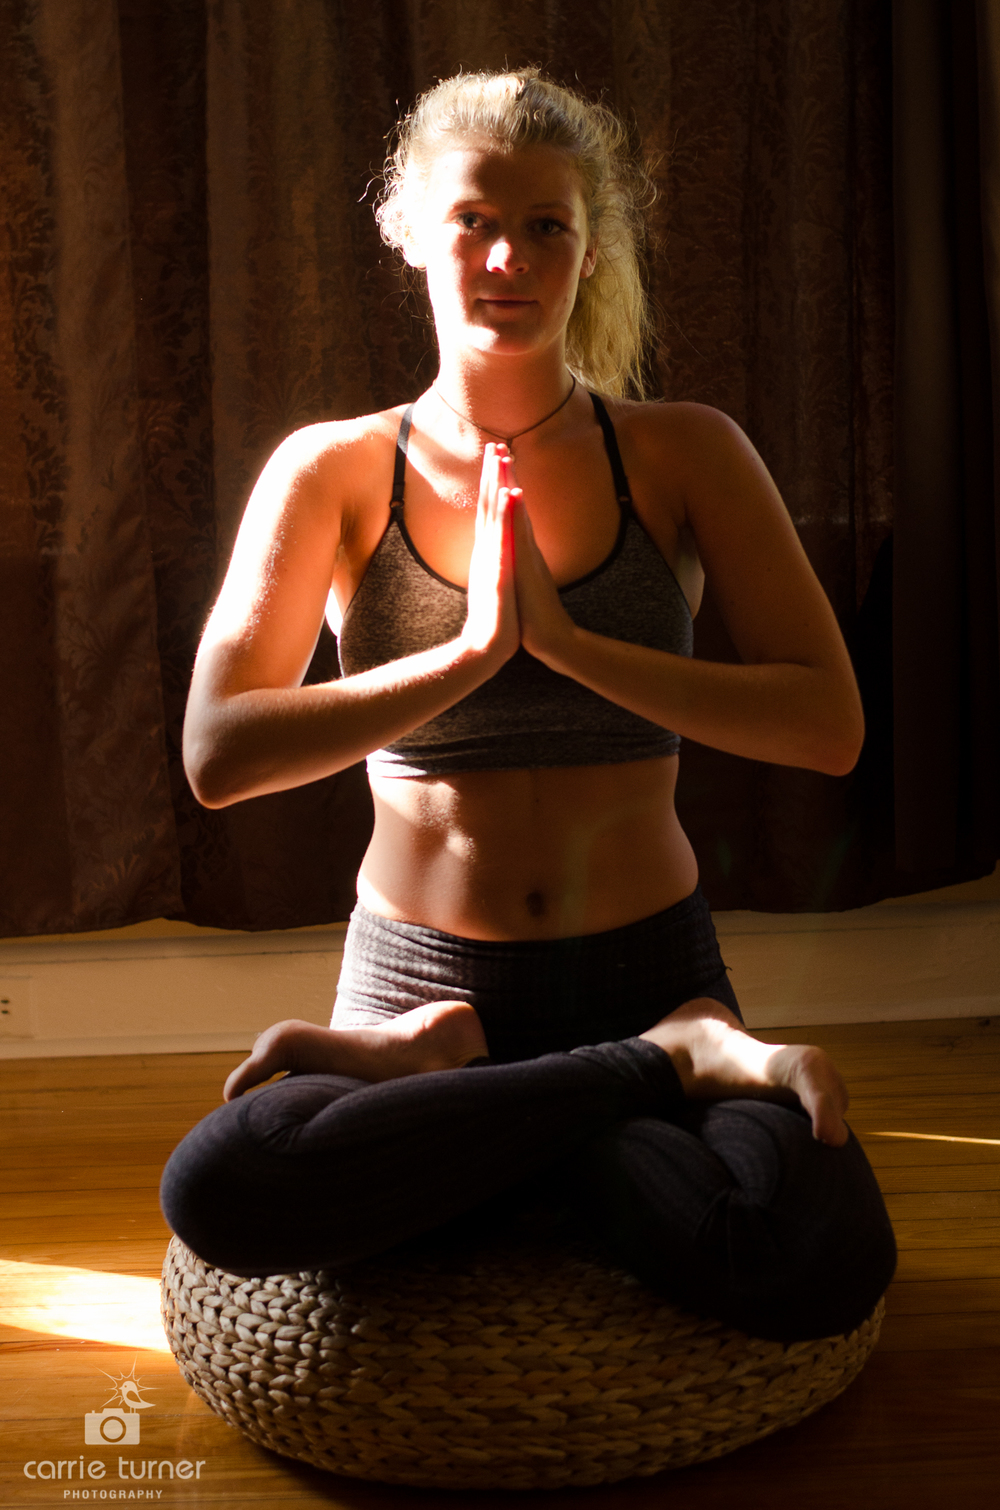 Maggie_yoga and portraits-92.jpg